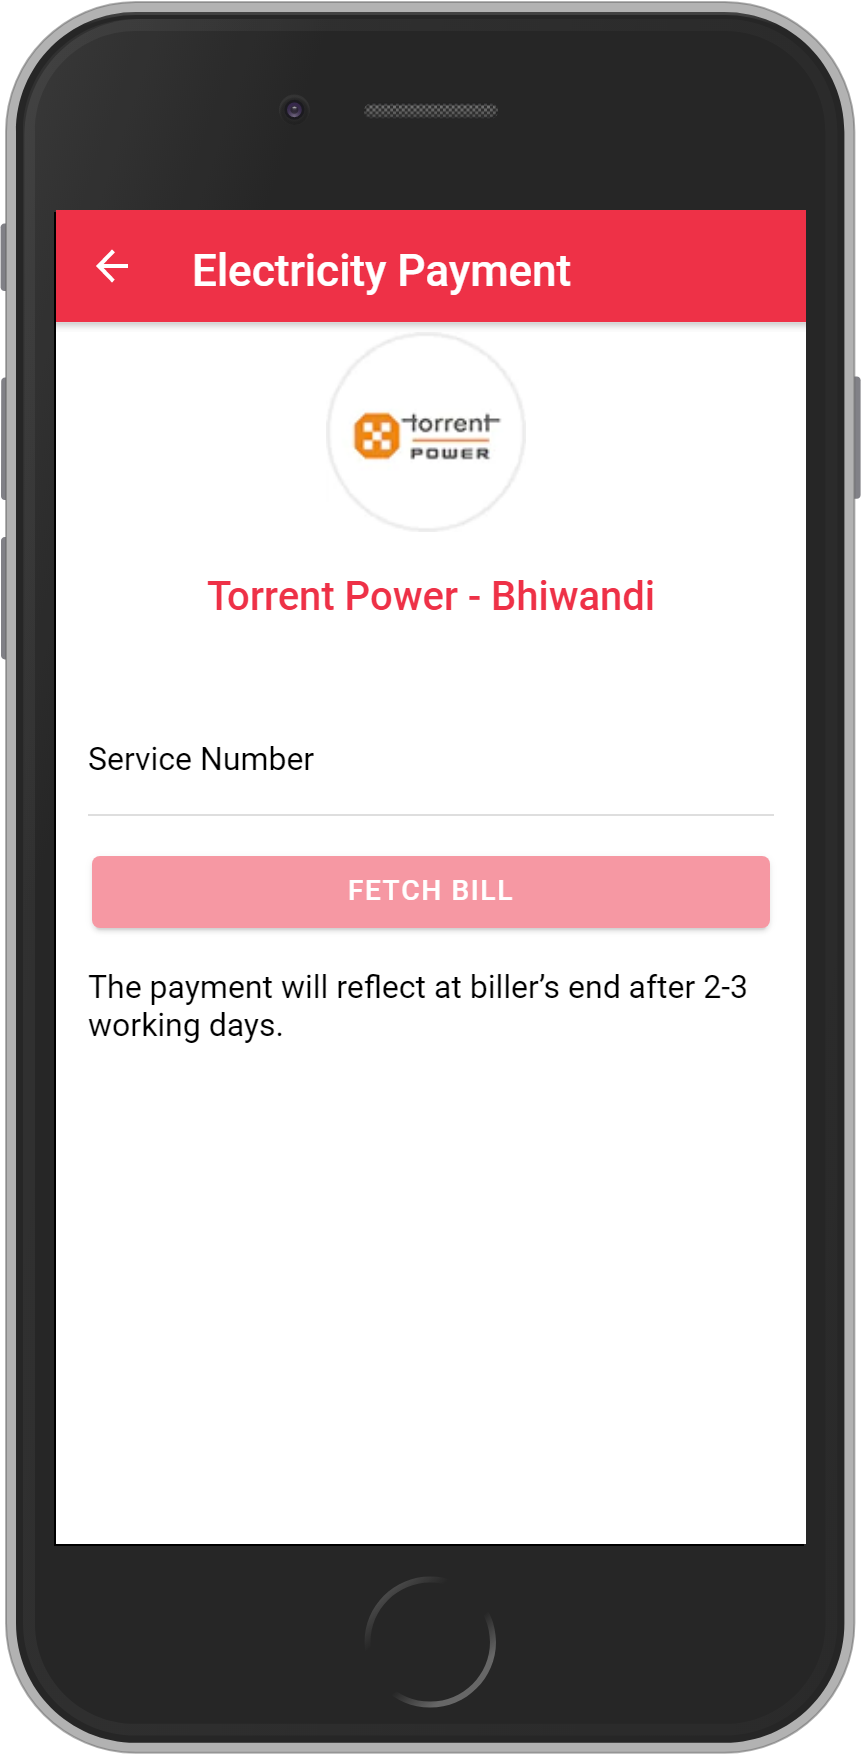 Get UNLIMITED <b>0.1%</b> CASHBACK on Torrent Power – Bhiwandi Payment.